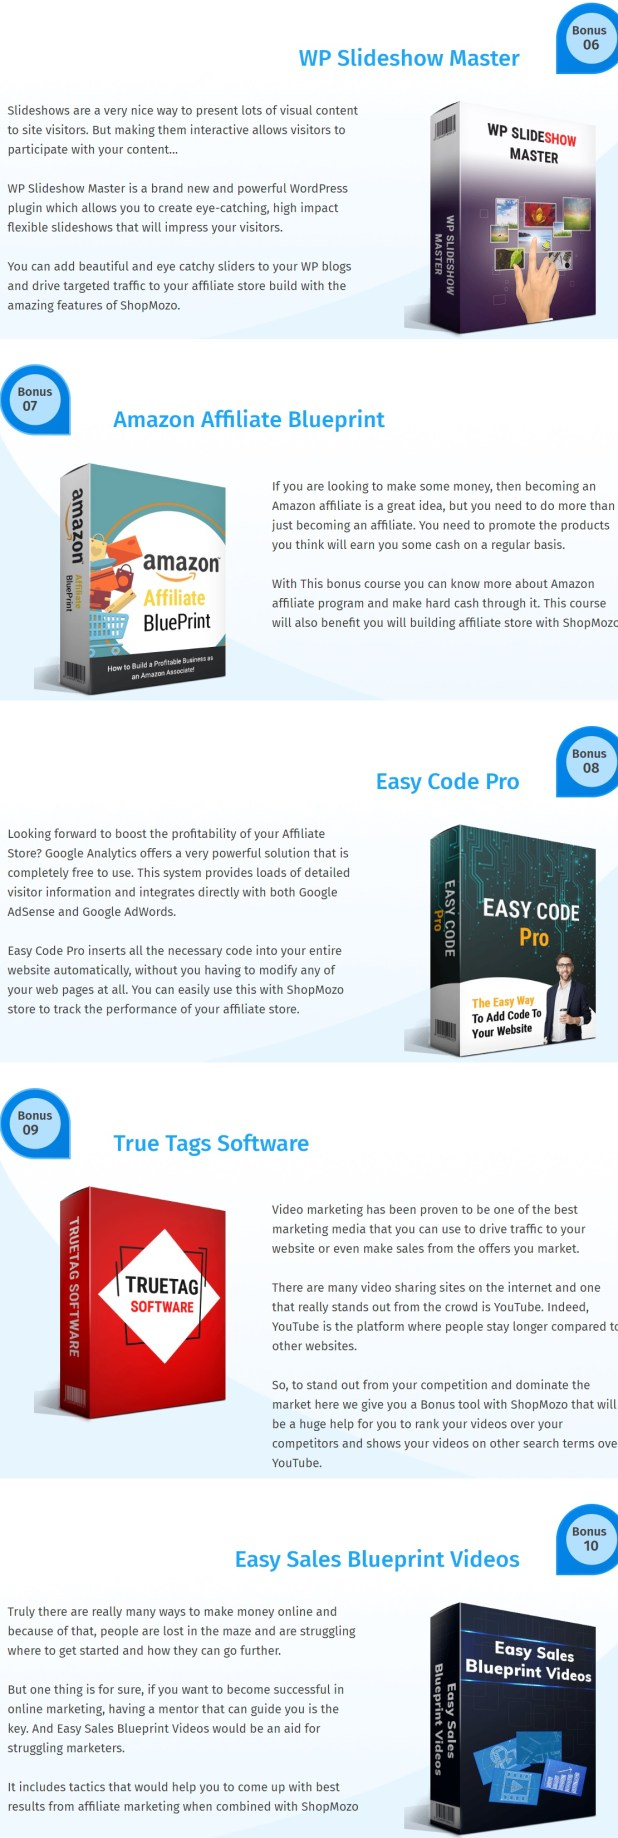 Azon fat cats review best course on selling on amazon am review 3 steps to claim this bonuses malvernweather Choice Image